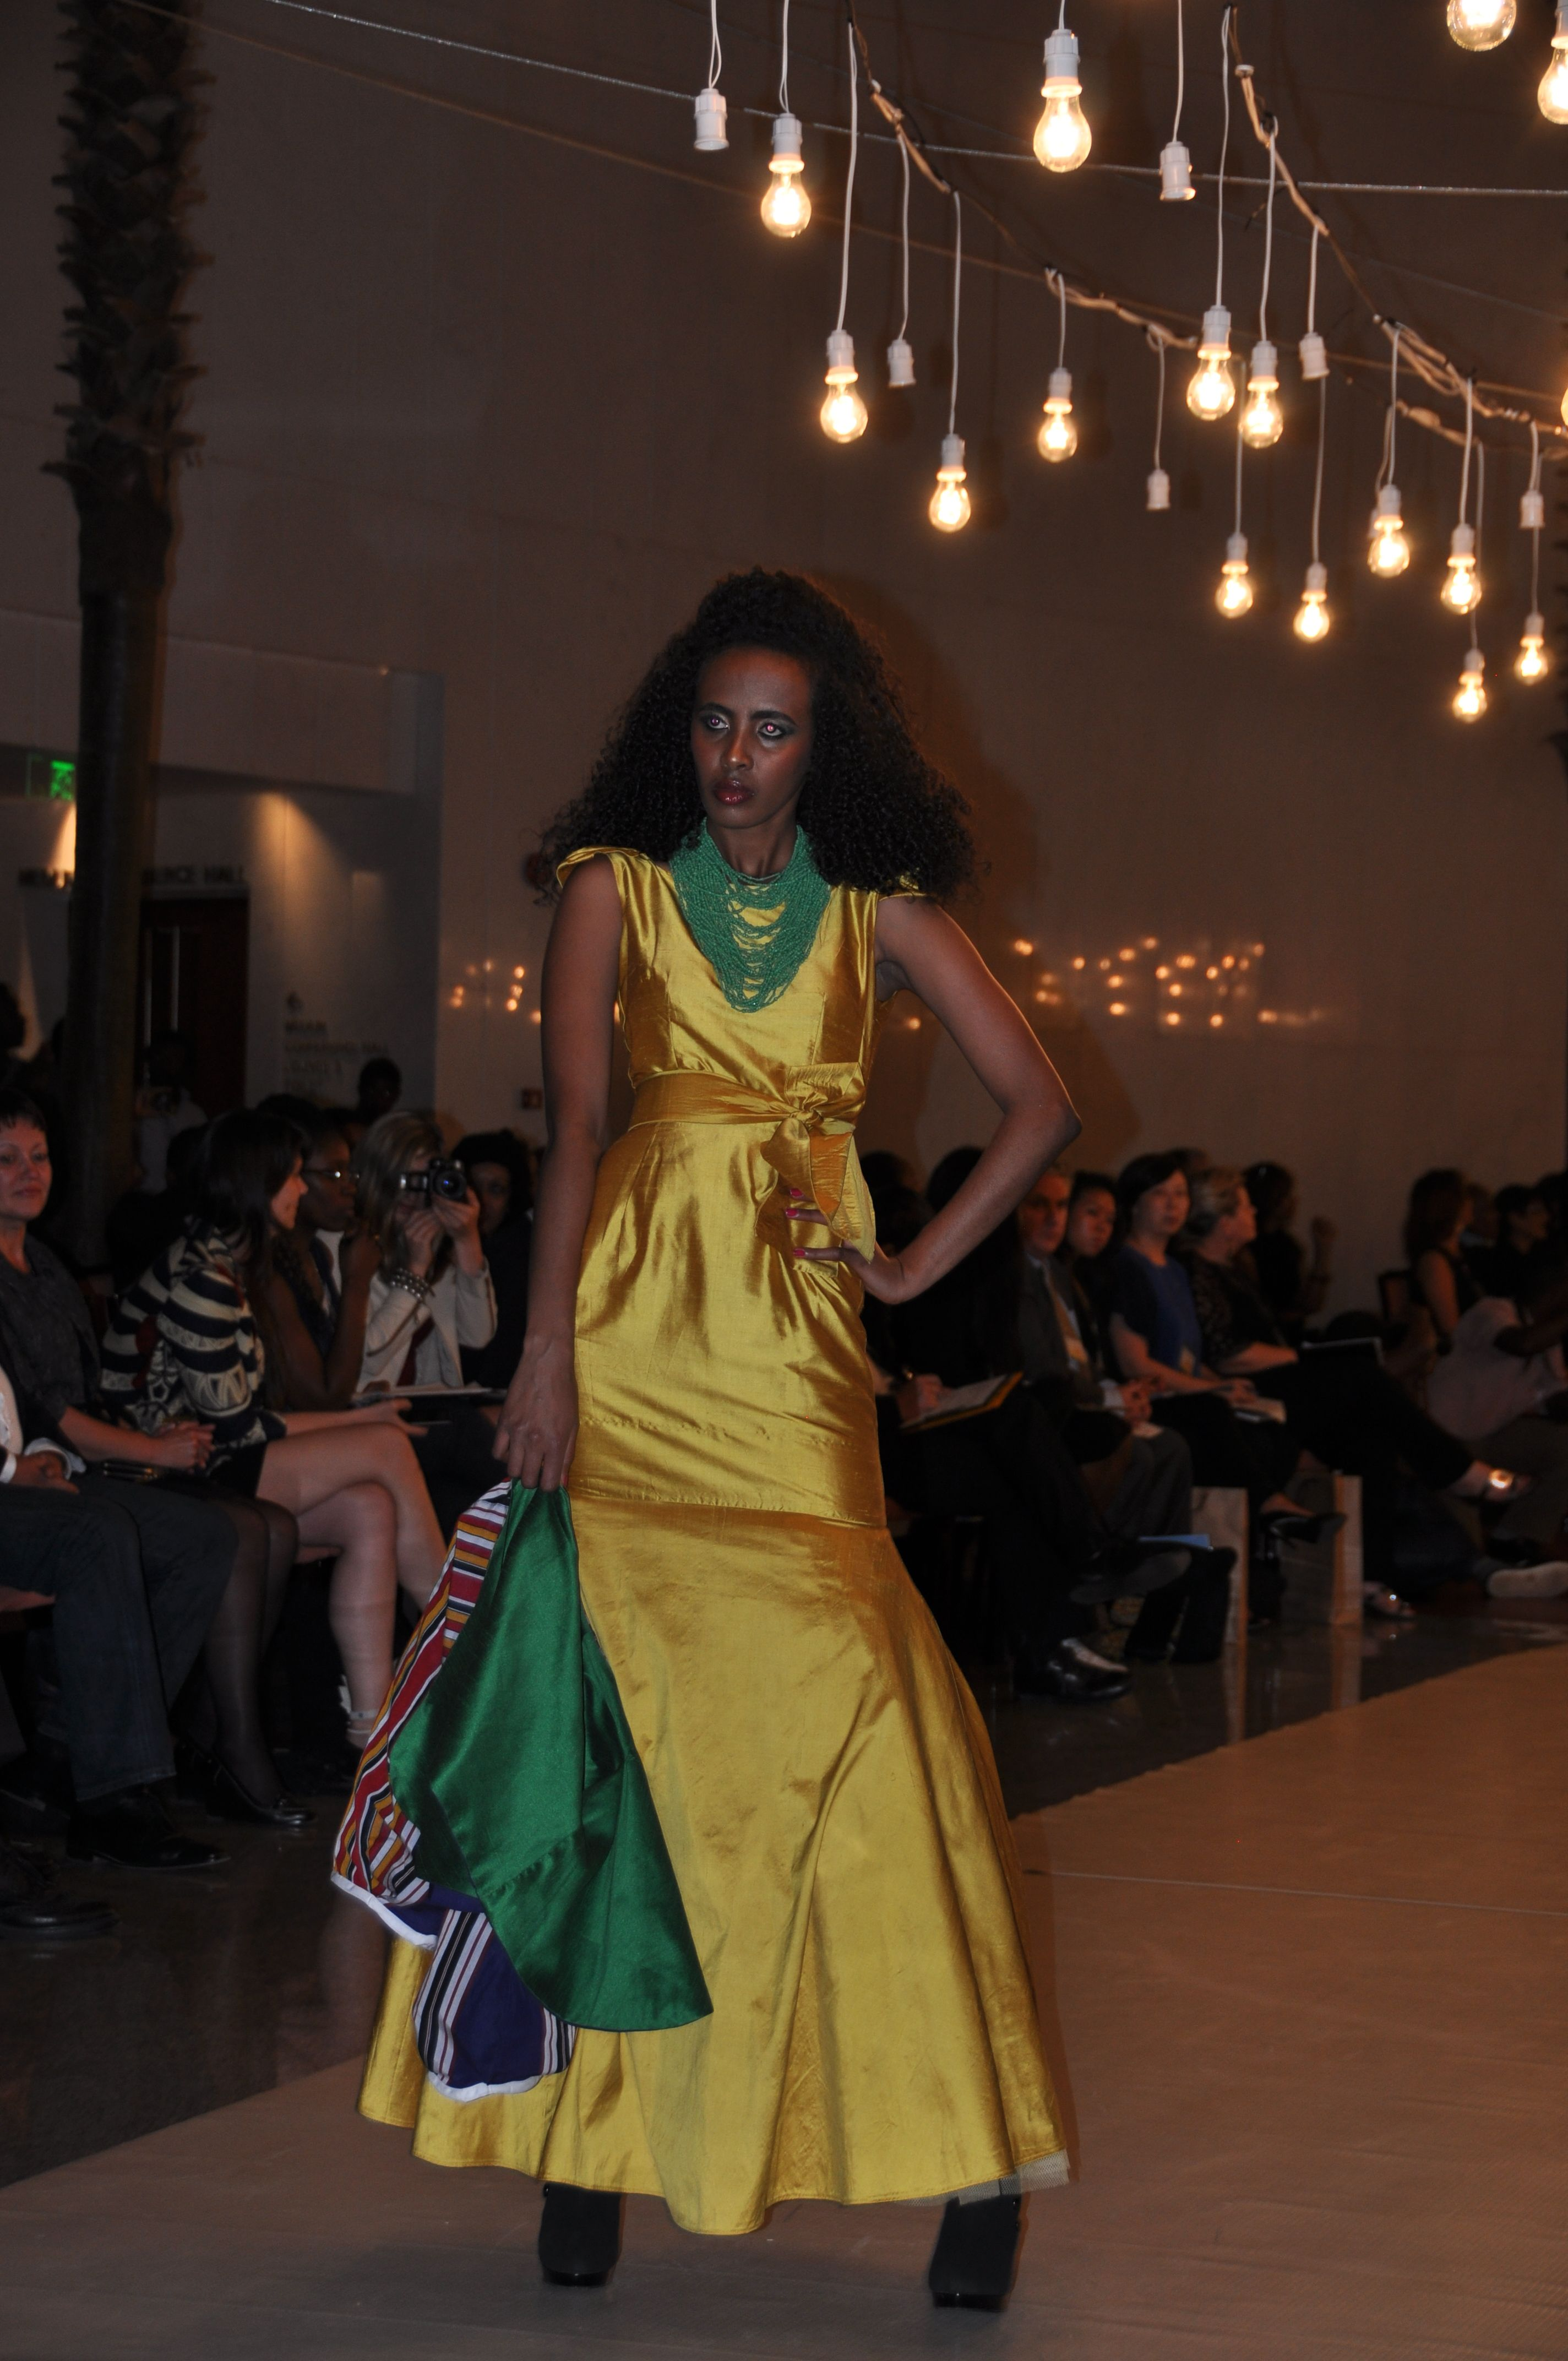 Adiree Partners With The Usaid To Launch African Fashion Designers In The United States New York African Fashion Designers African Fashion Fashion